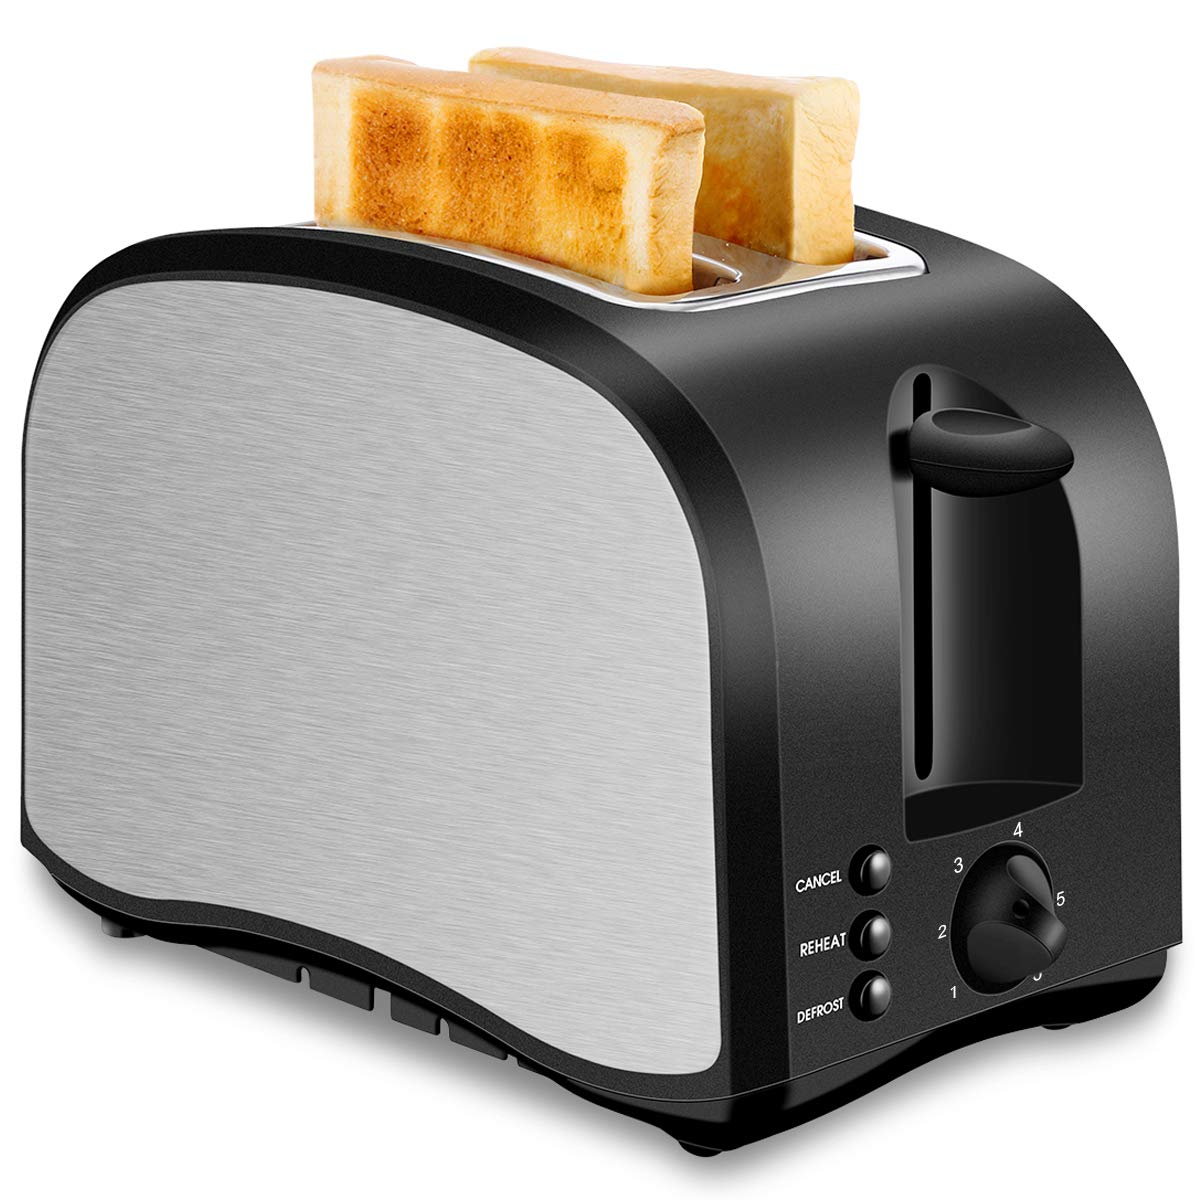 Toaster 2 Slice, CUSINAID Toasters with 2 Extra-Wide Slots, 2 Slot Toasters, Top Rated Best Prime, Stainless Steel with Pop Up Reheat Function Black